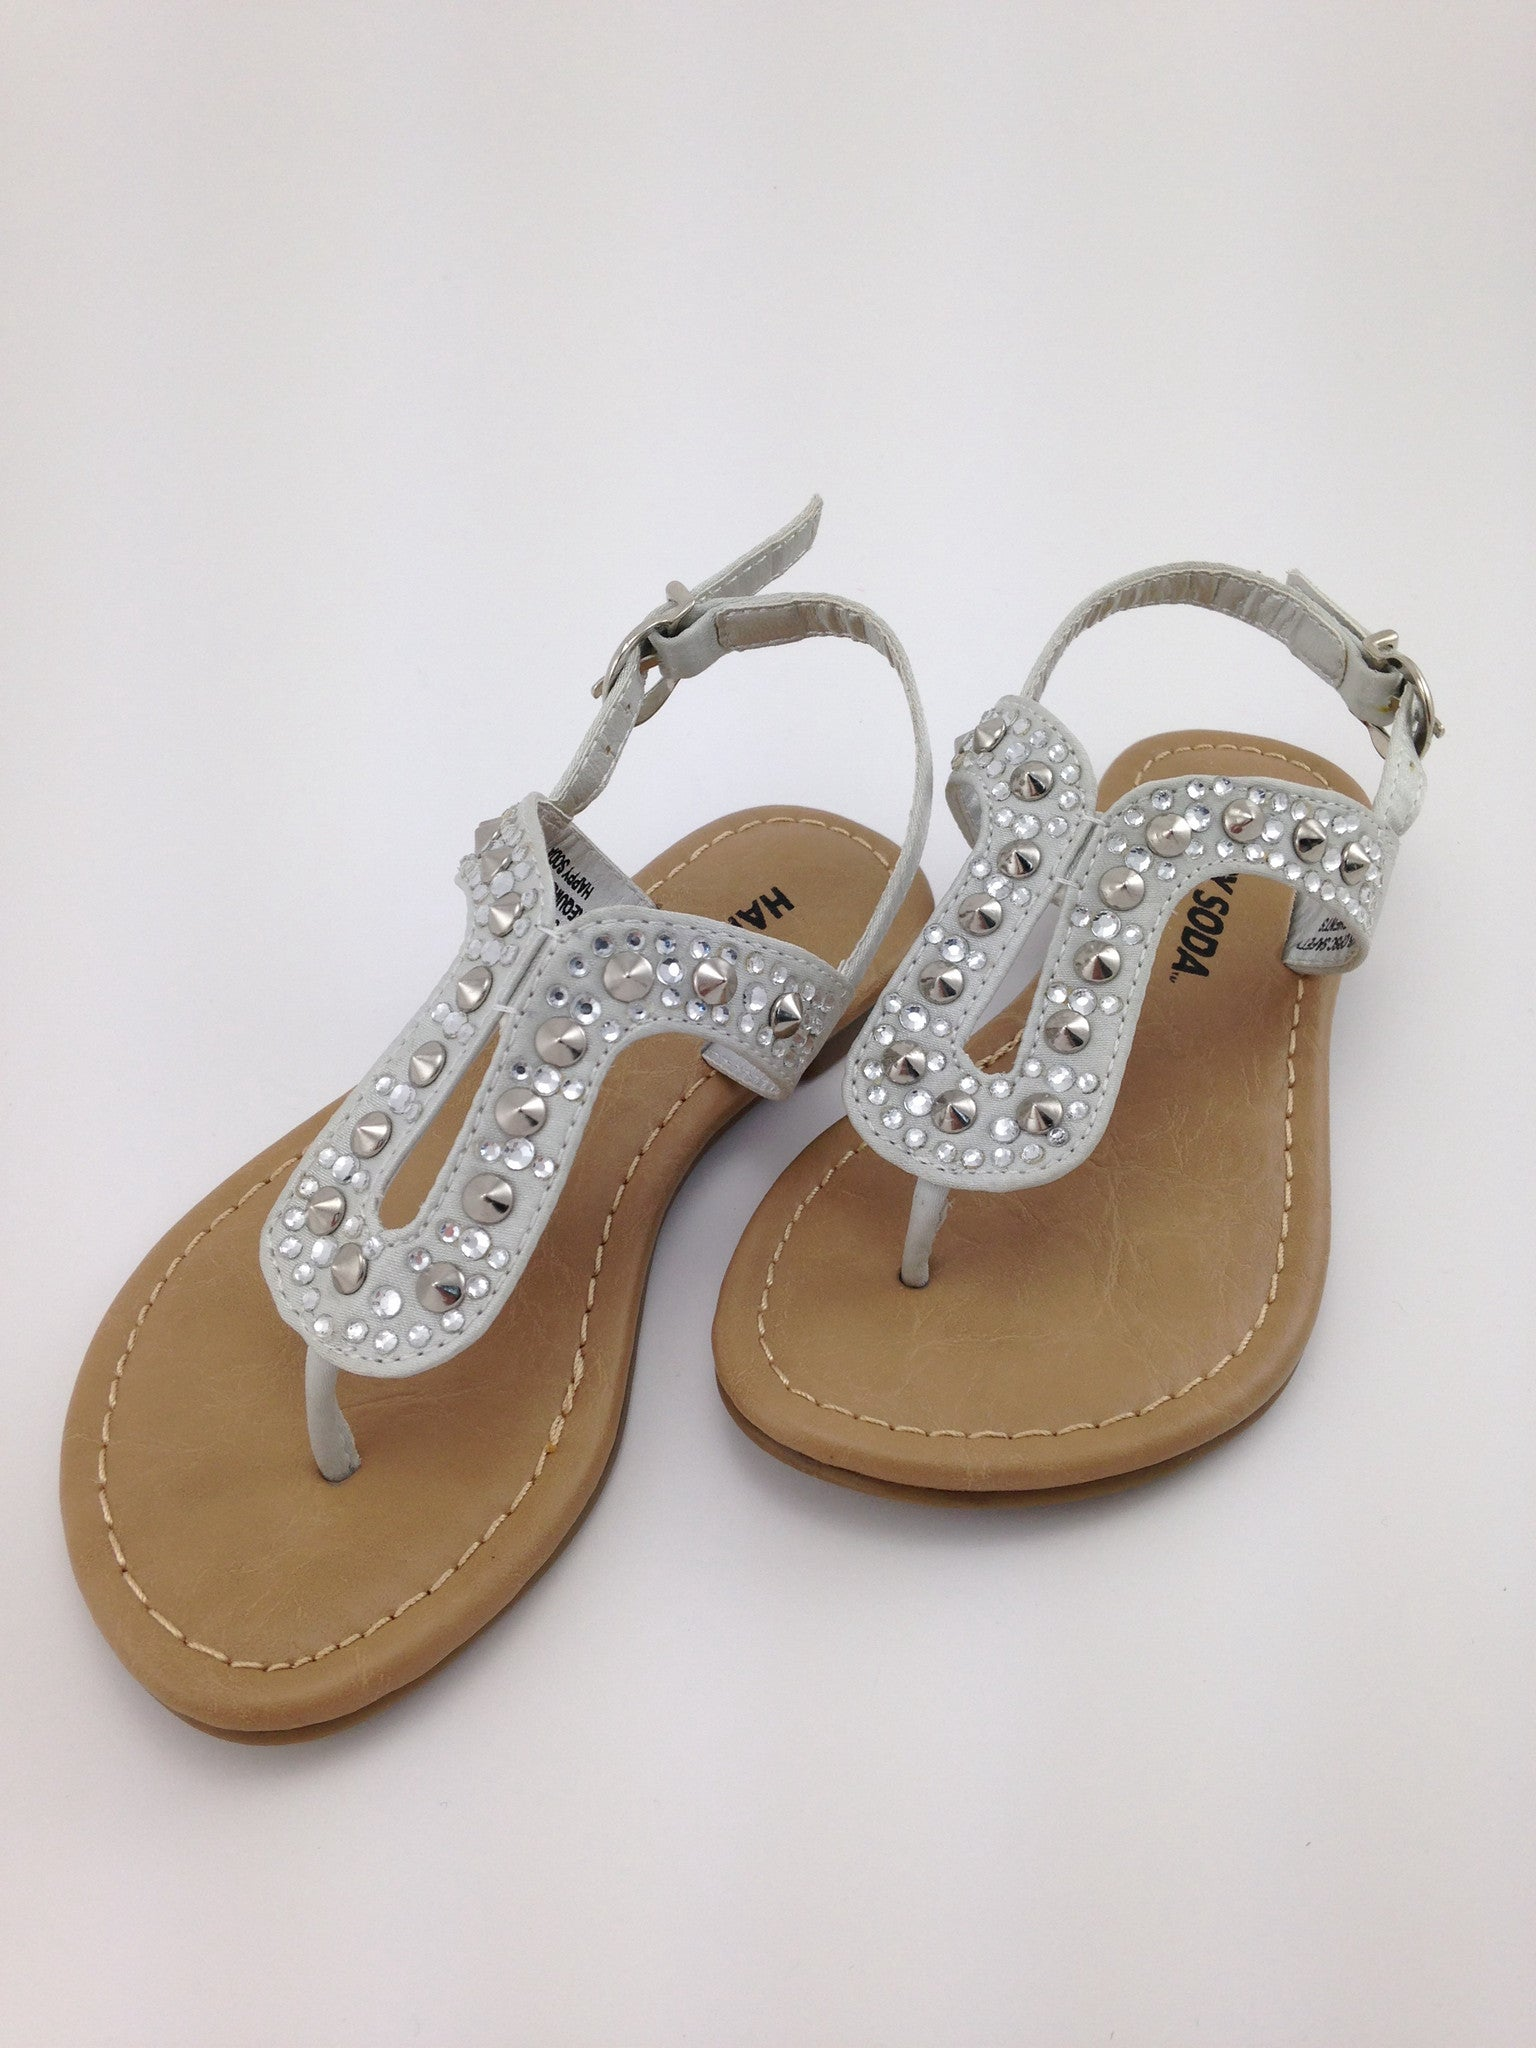 Girls Silver Sandals | Shoes for Girls